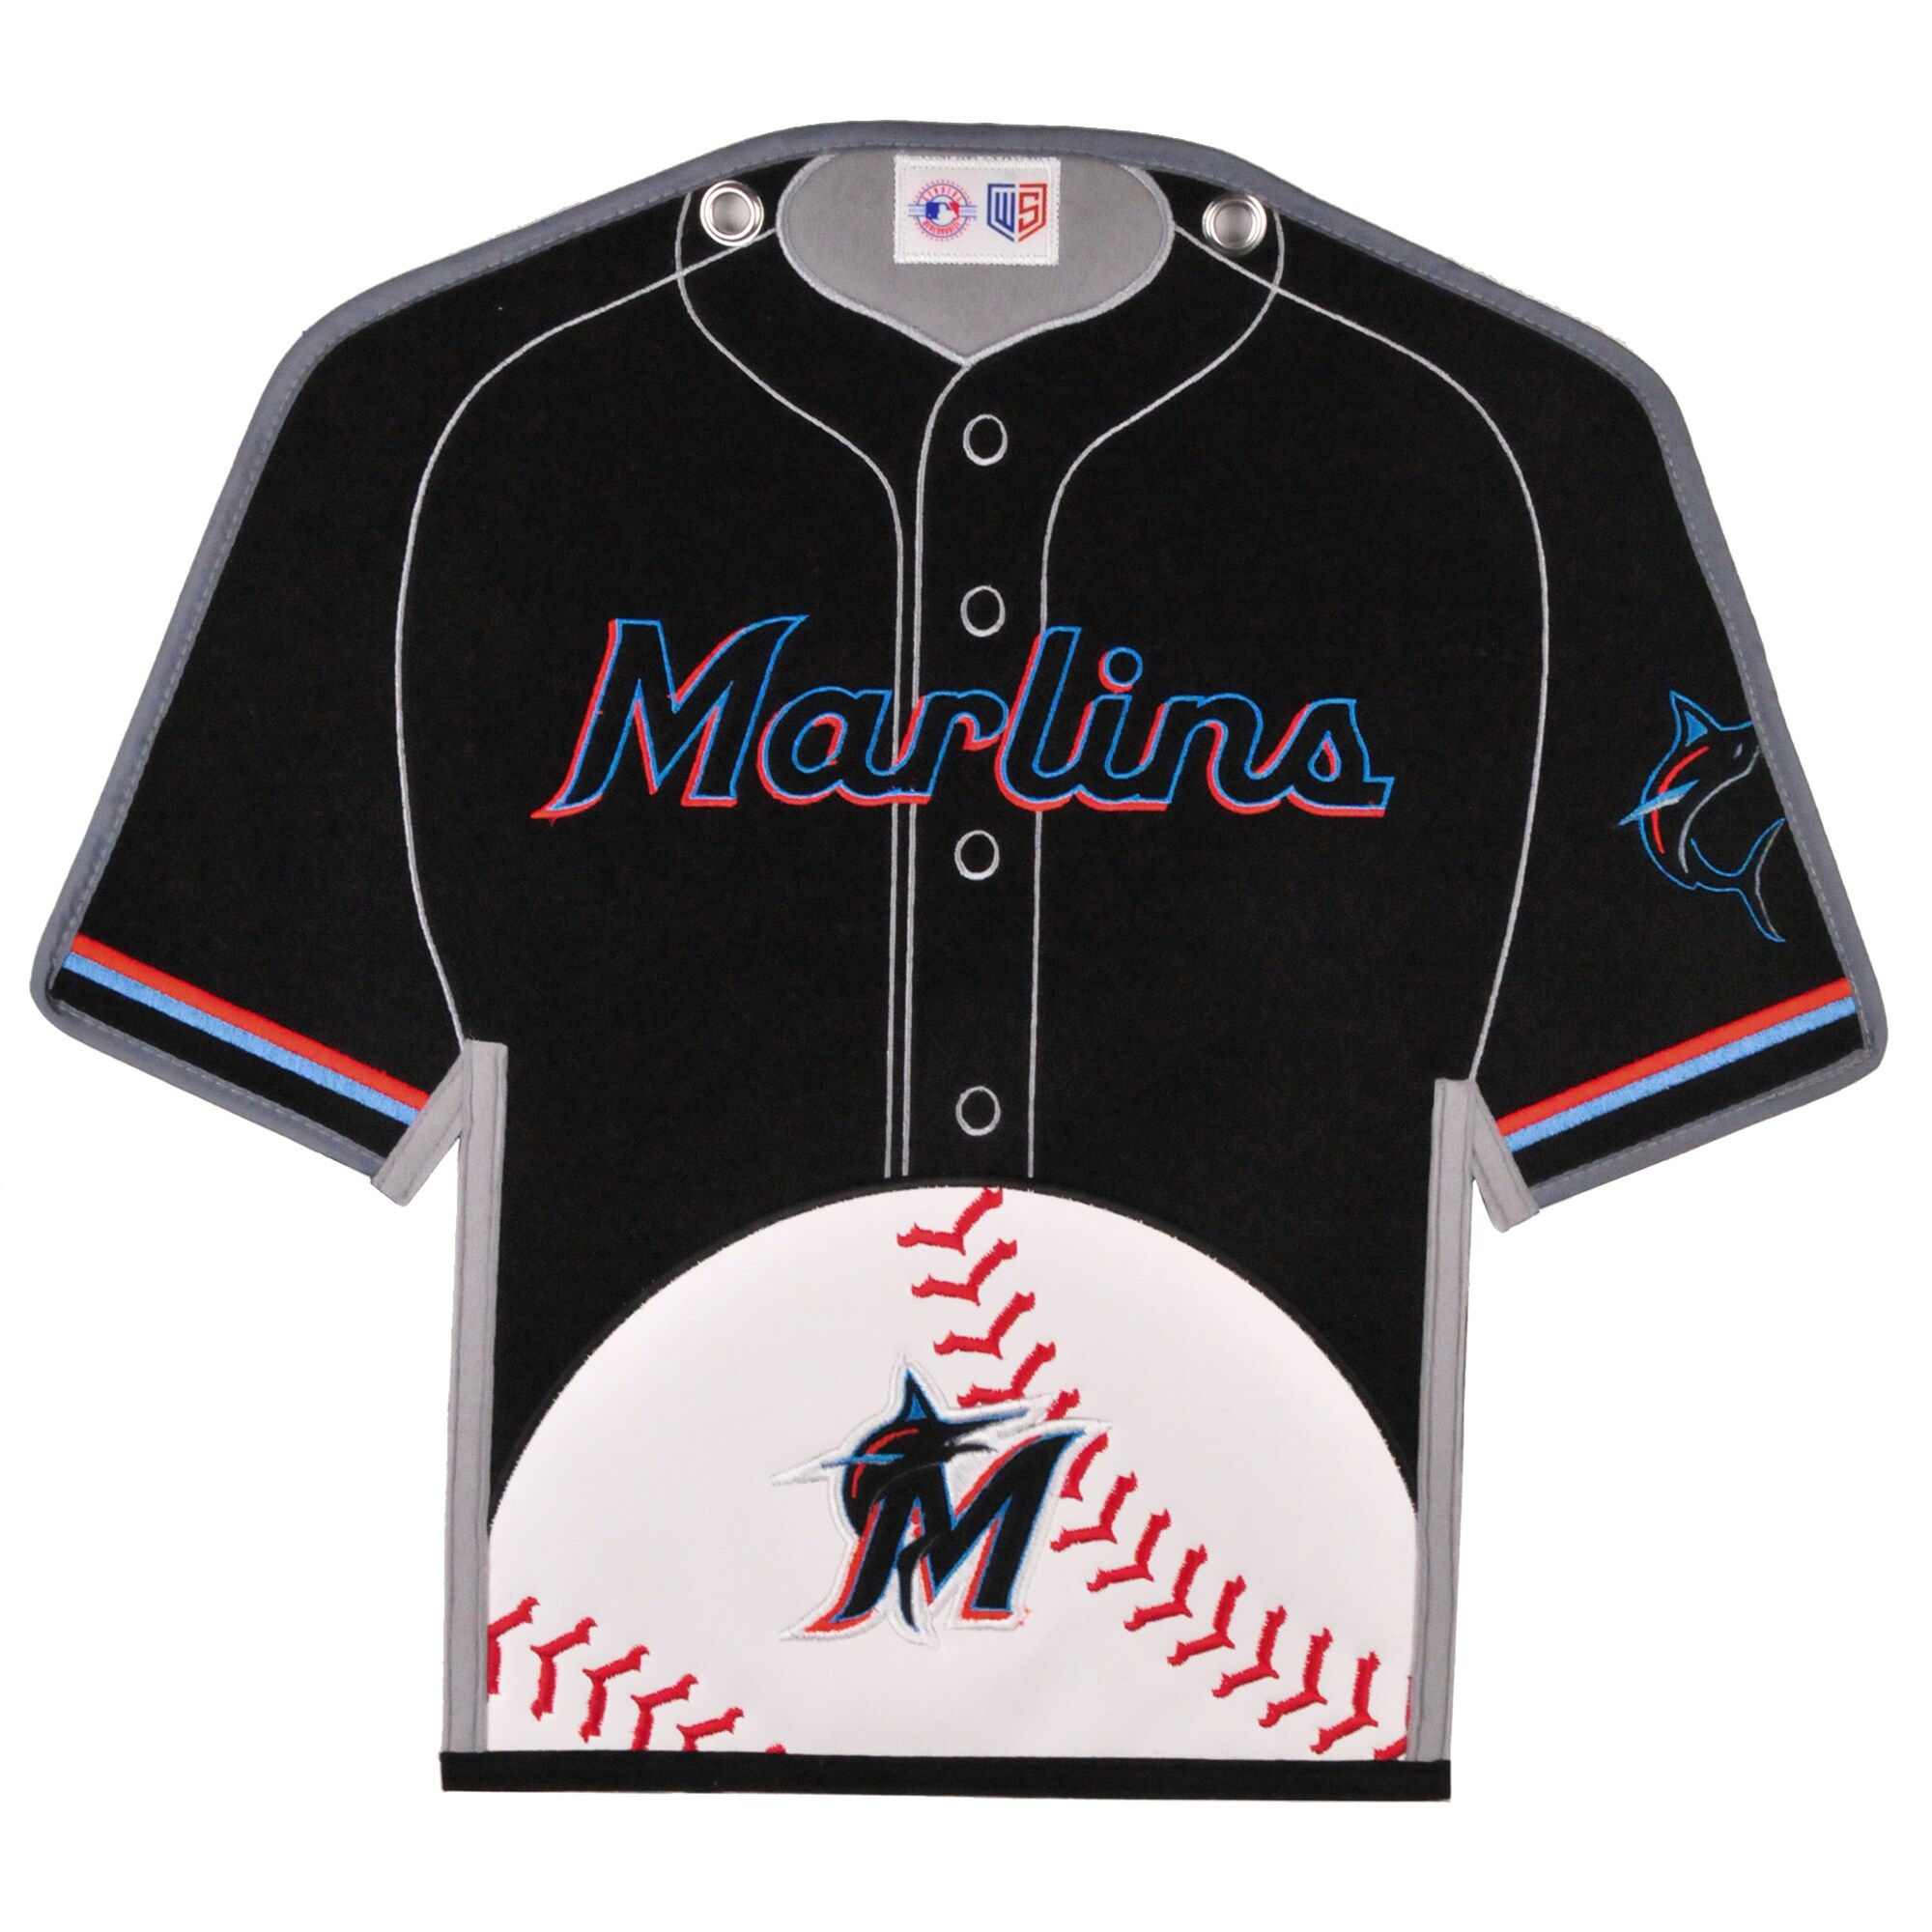 Miami Marlins 14'' x 22'' Jersey Traditions Banner - Black/Teal